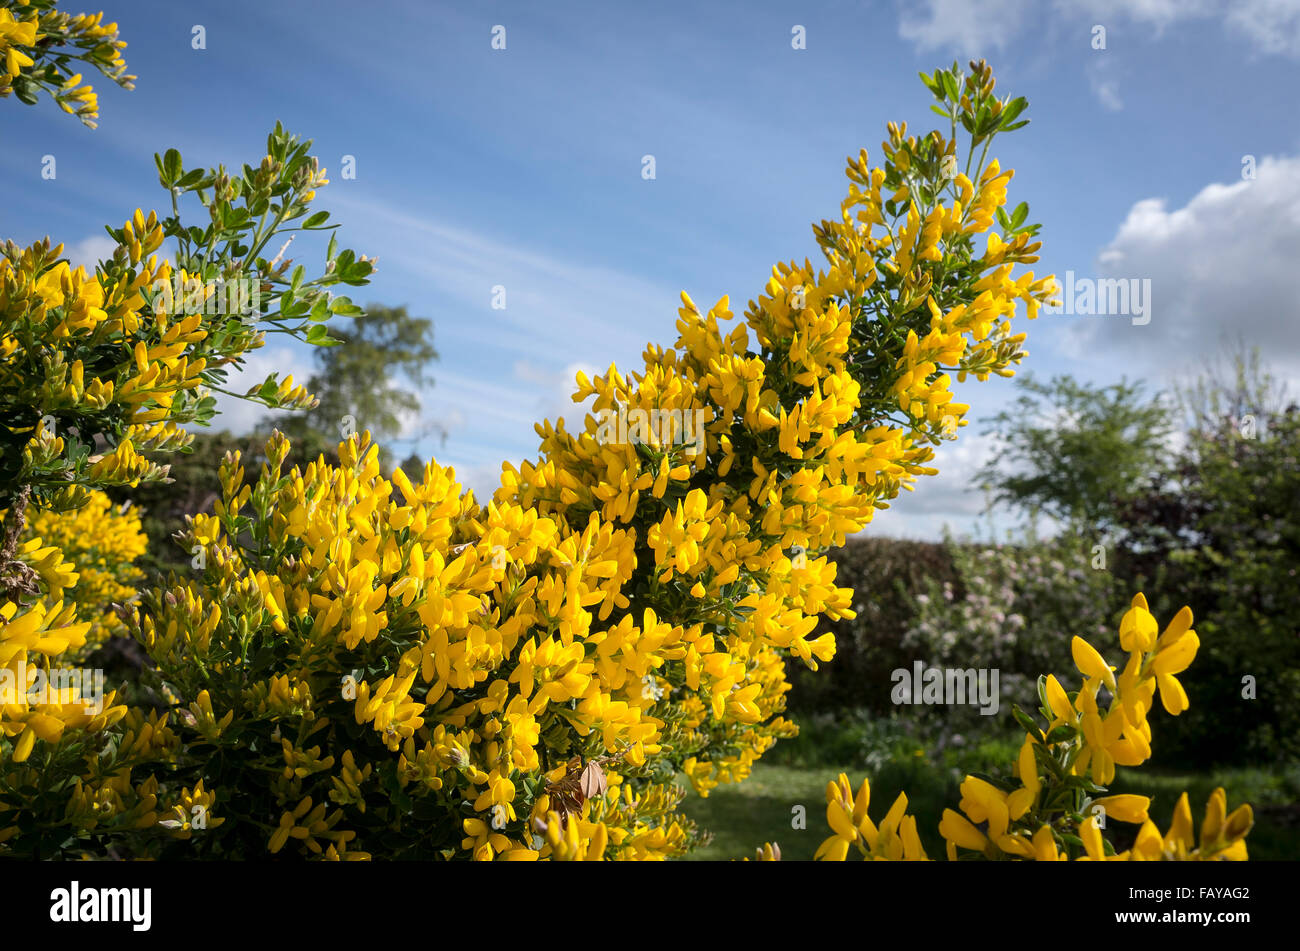 Shrub With Fragrant Yellow Flowers In Spring Stock Photos Shrub